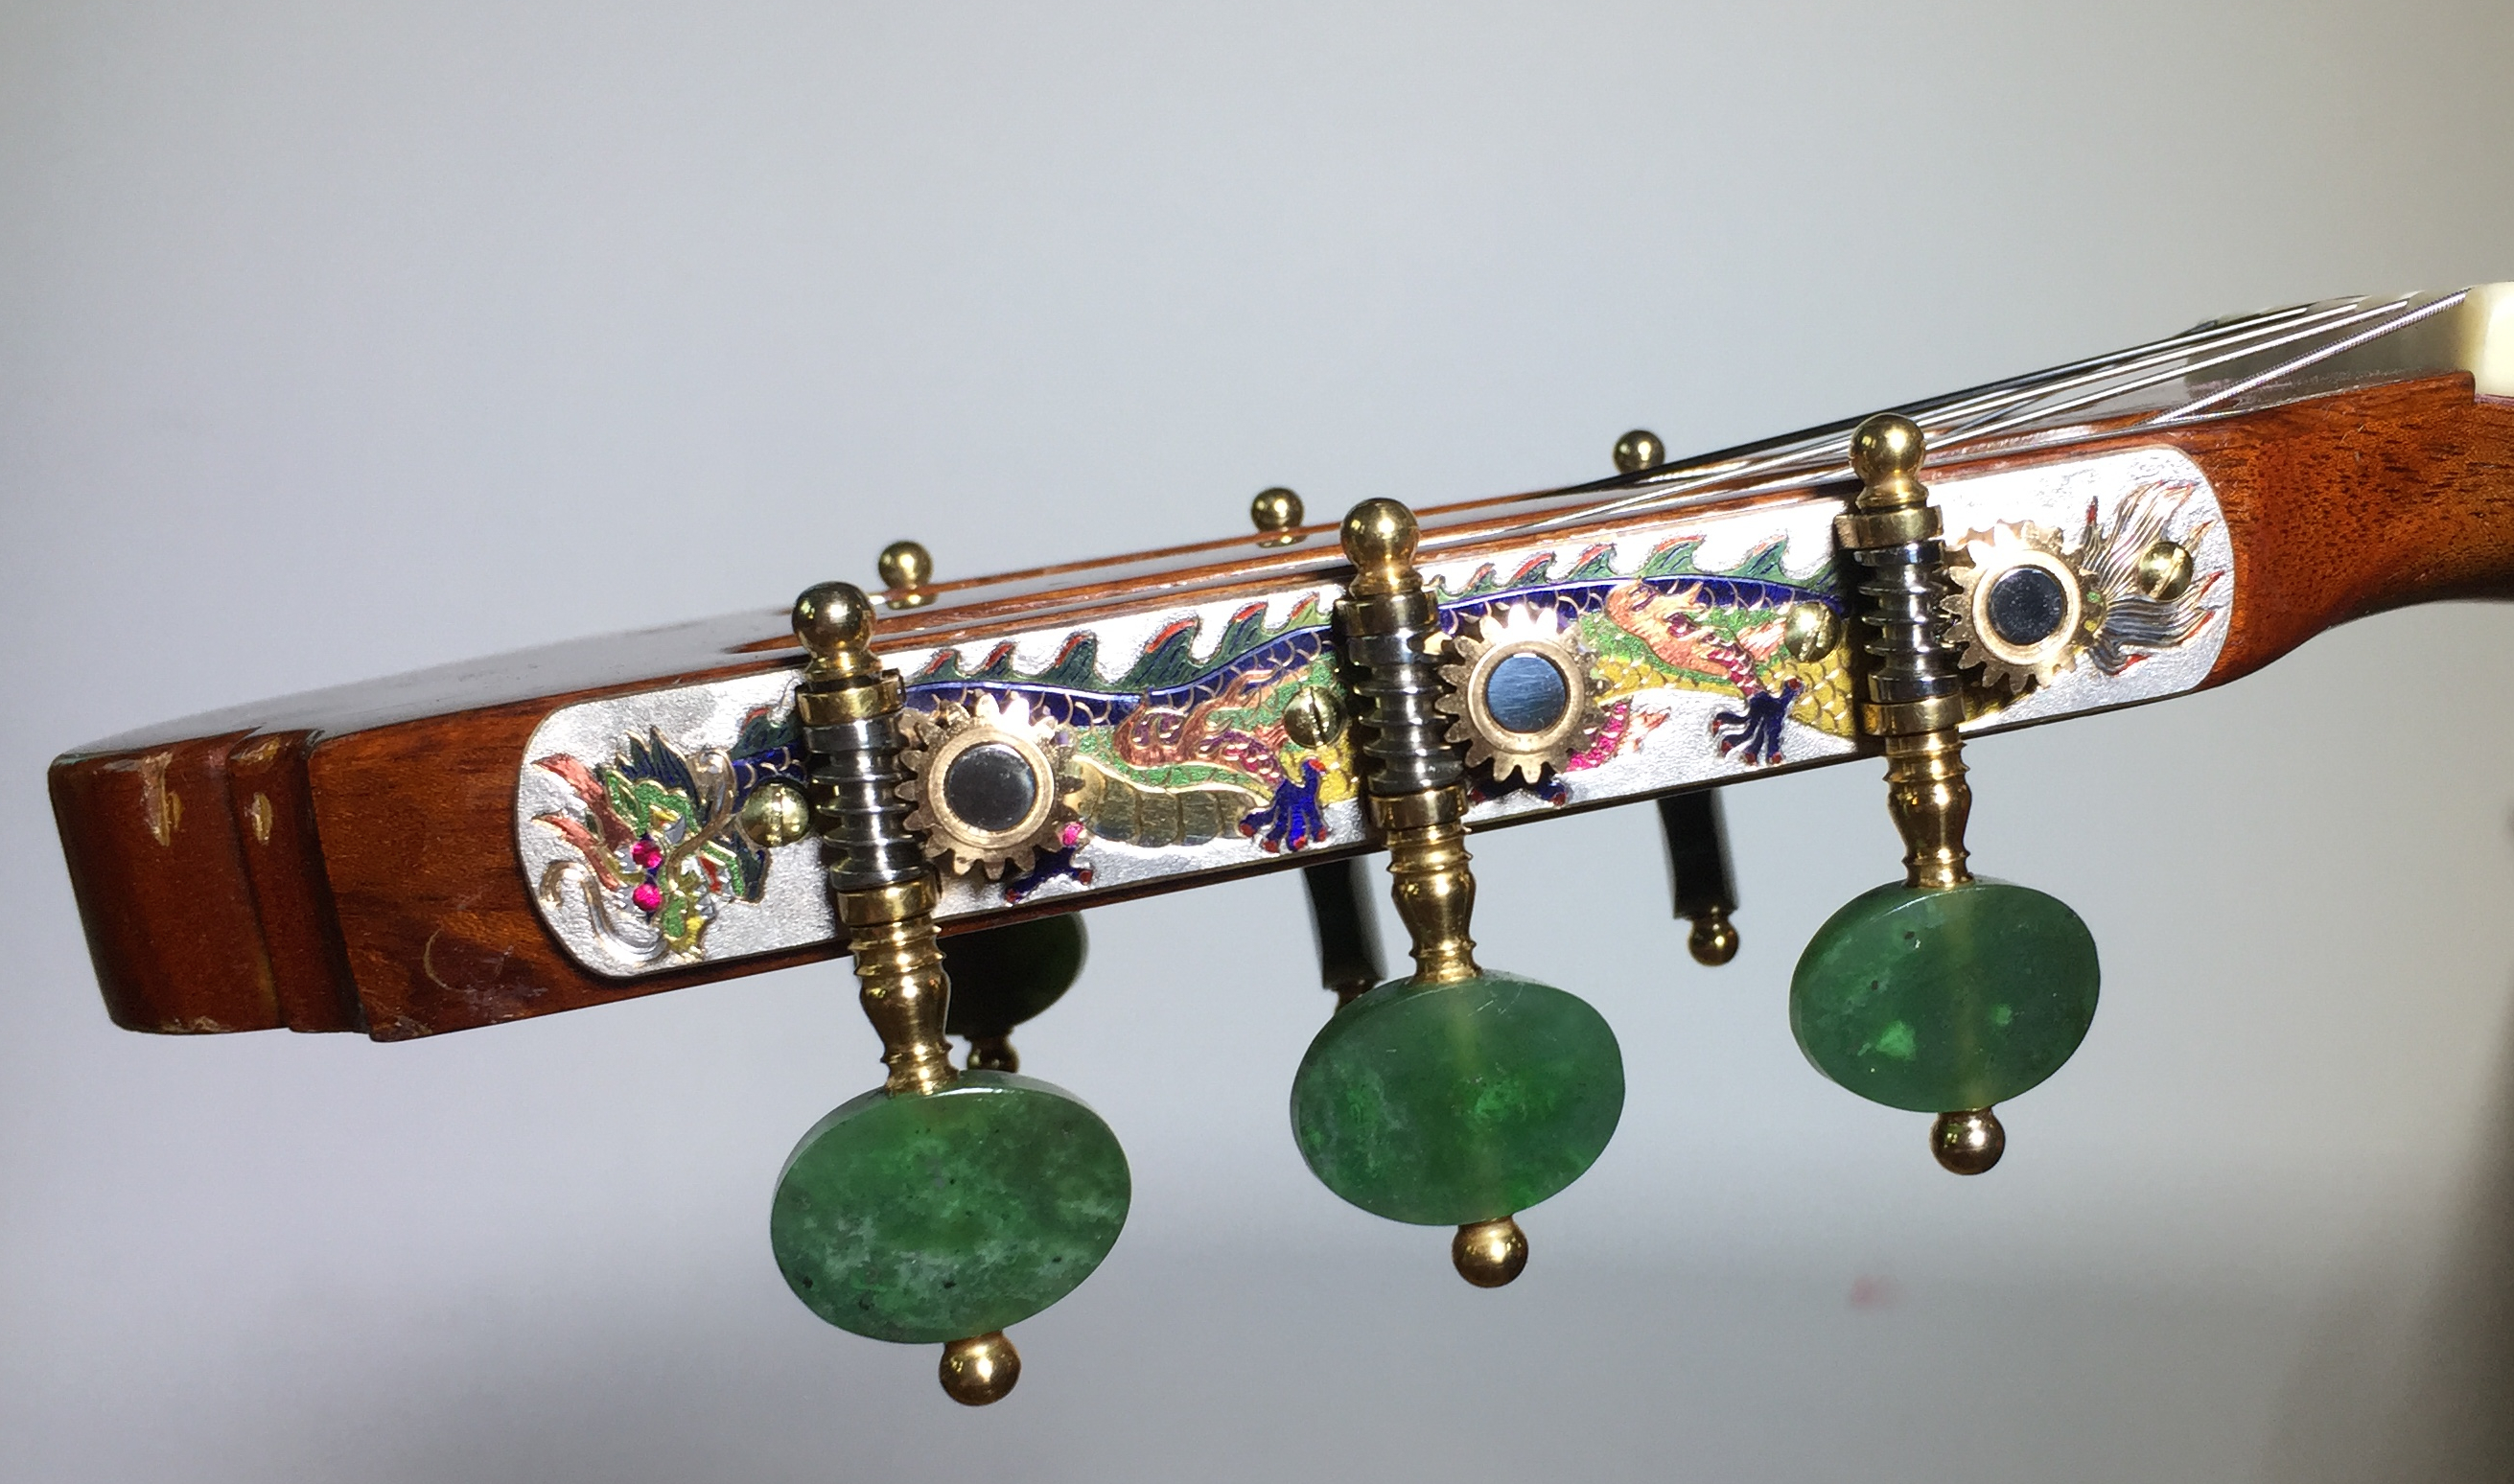 Zillmer retrofitted this flamenco guitar with special custom tuners designed specifically for him — check out the two Chinese-style dragons along with jade tuners.